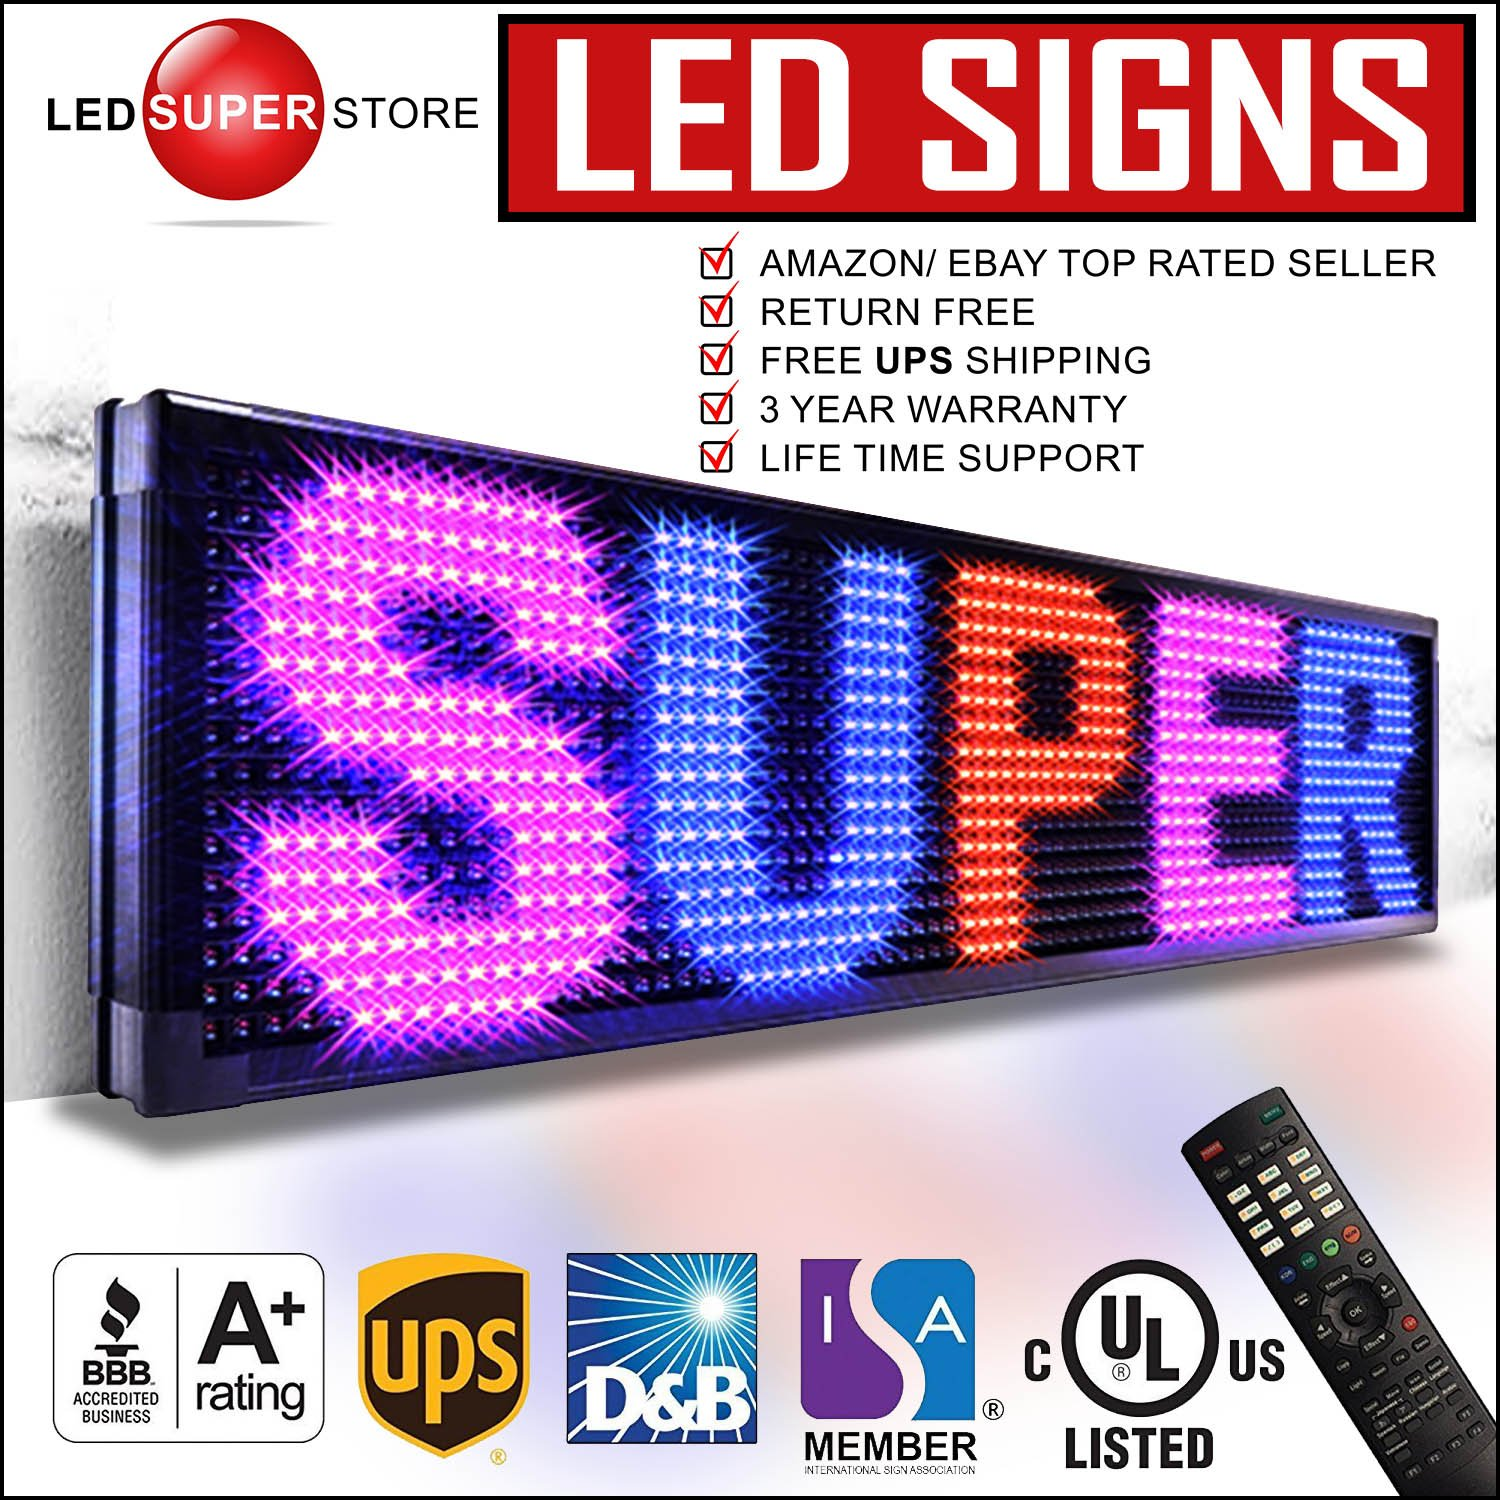 LED SUPER STORE: 3Color/RBP/P30mm/IR - 22''x60'' Remote Control, Outdoor Programmable Message Scrolling EMC Signs Display, Reader Board